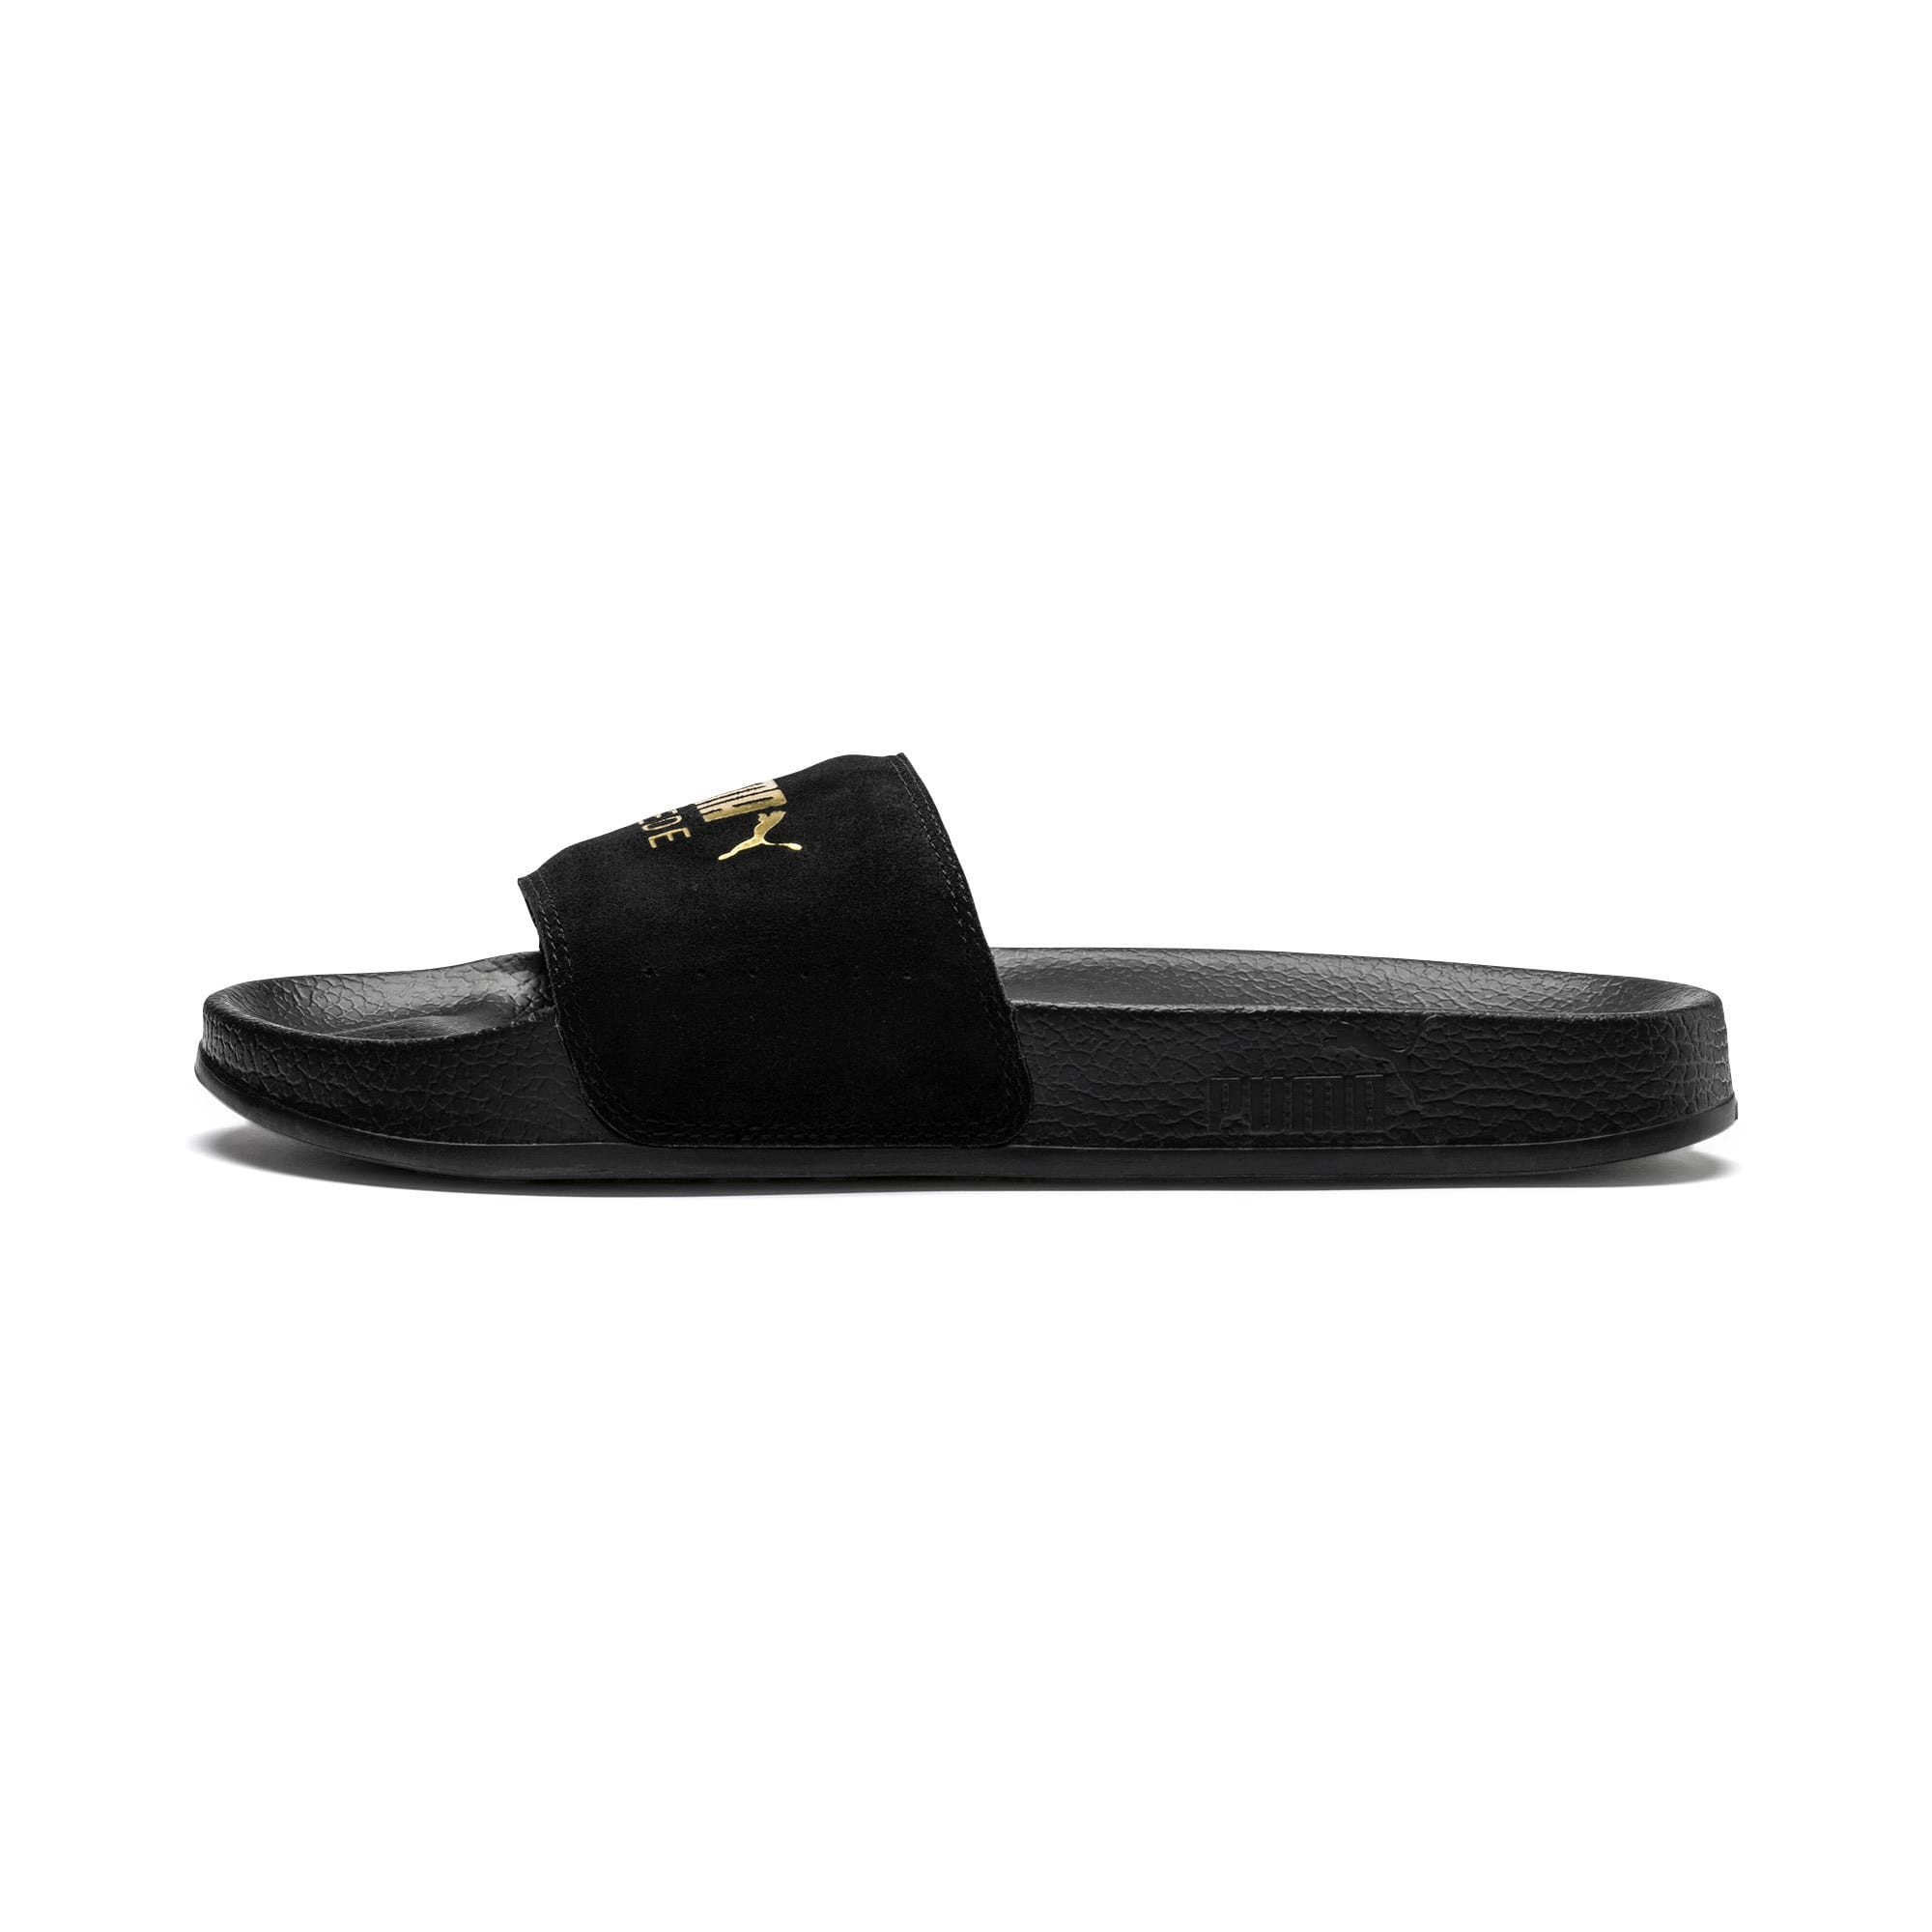 Thumbnail 1 of Suede Leadcat, Puma Black-Puma Team Gold, medium